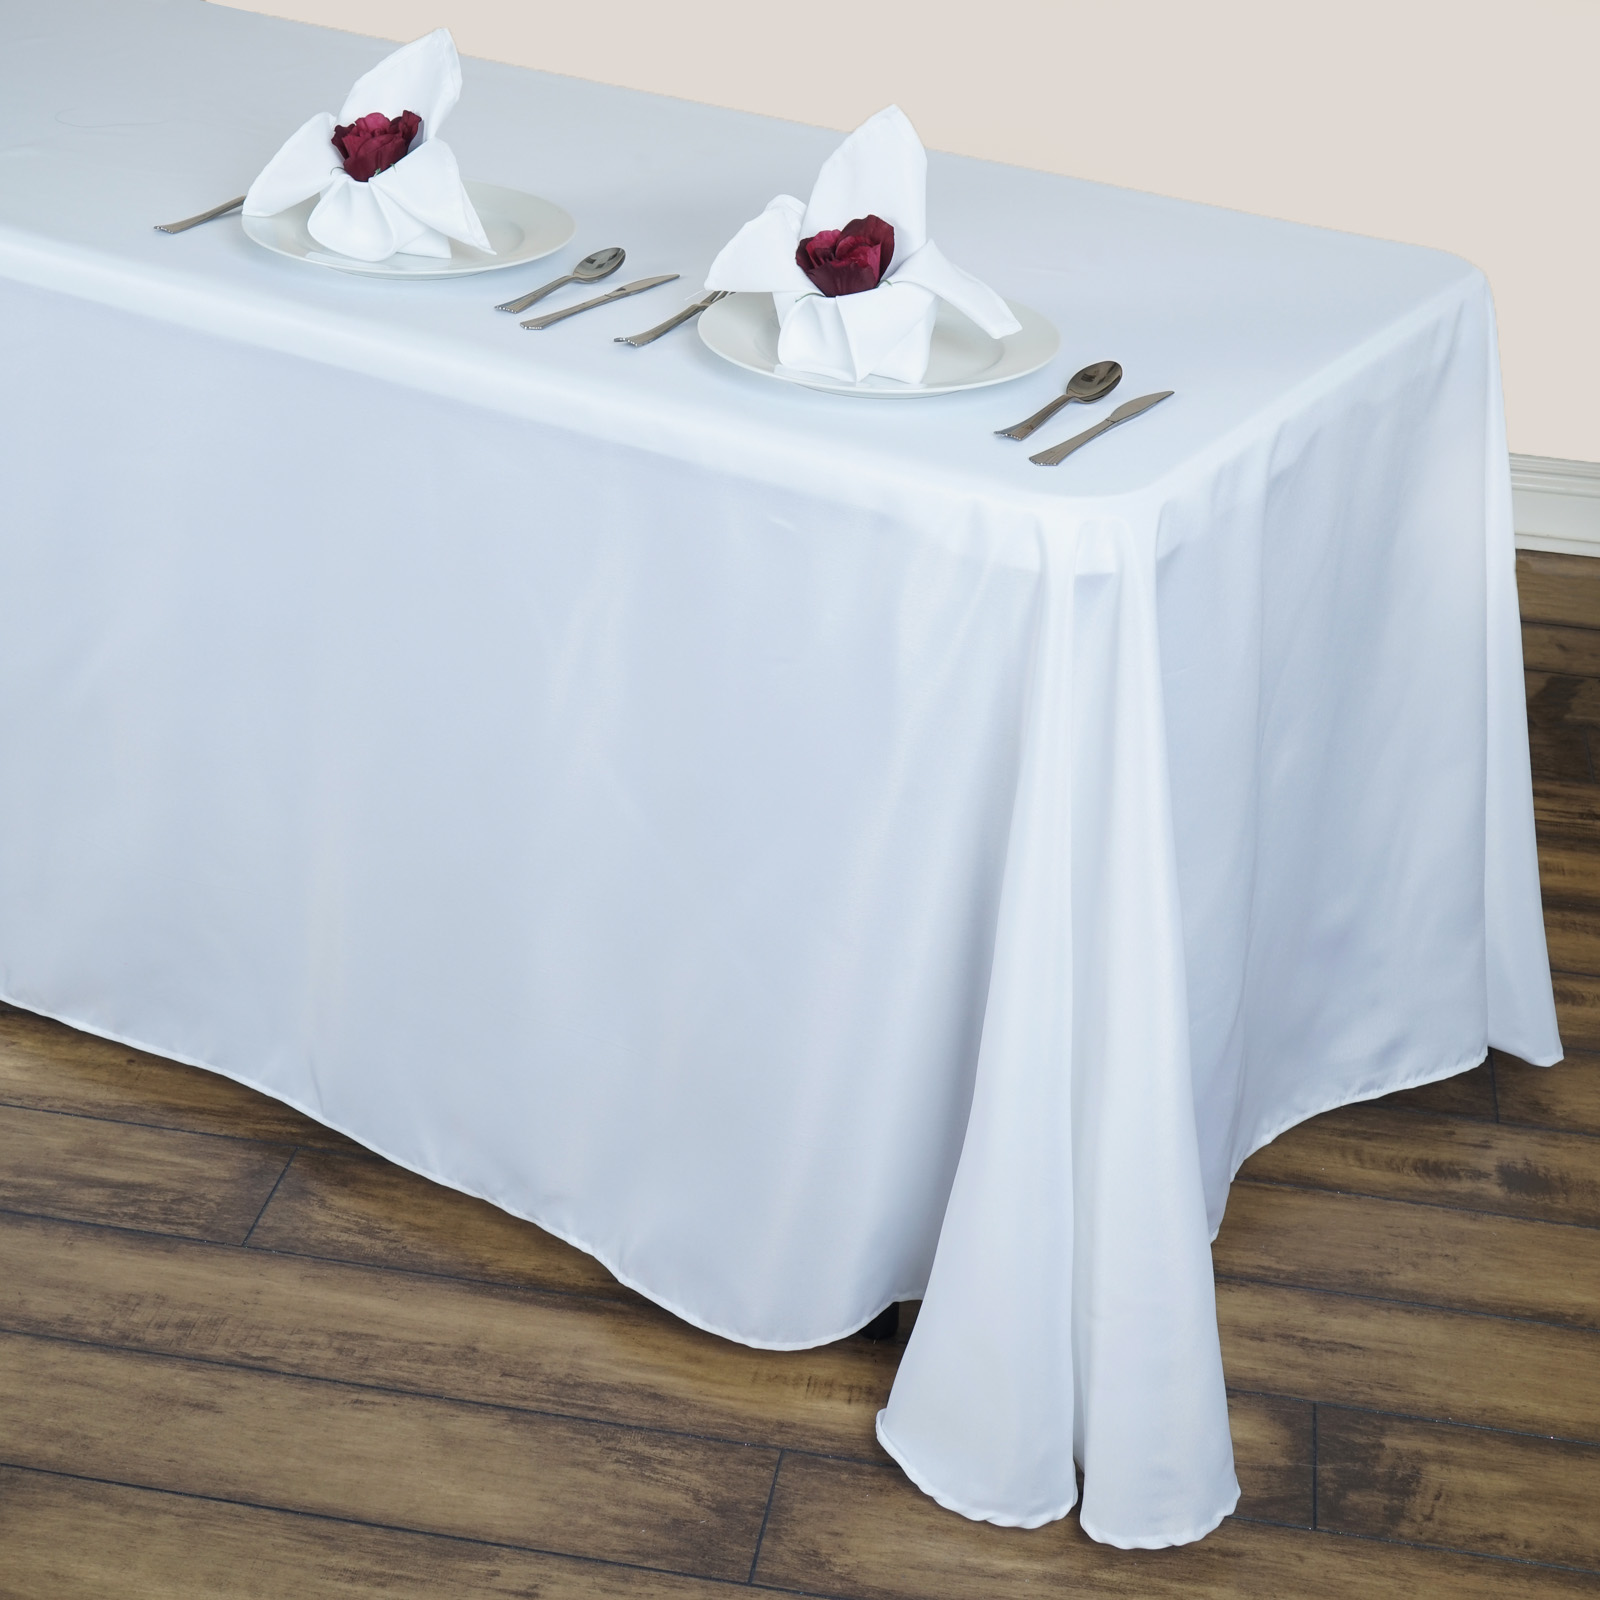 Efavormart Round Corner Polyester Rectangle Tablecloths for Kitchen Dining Catering... by